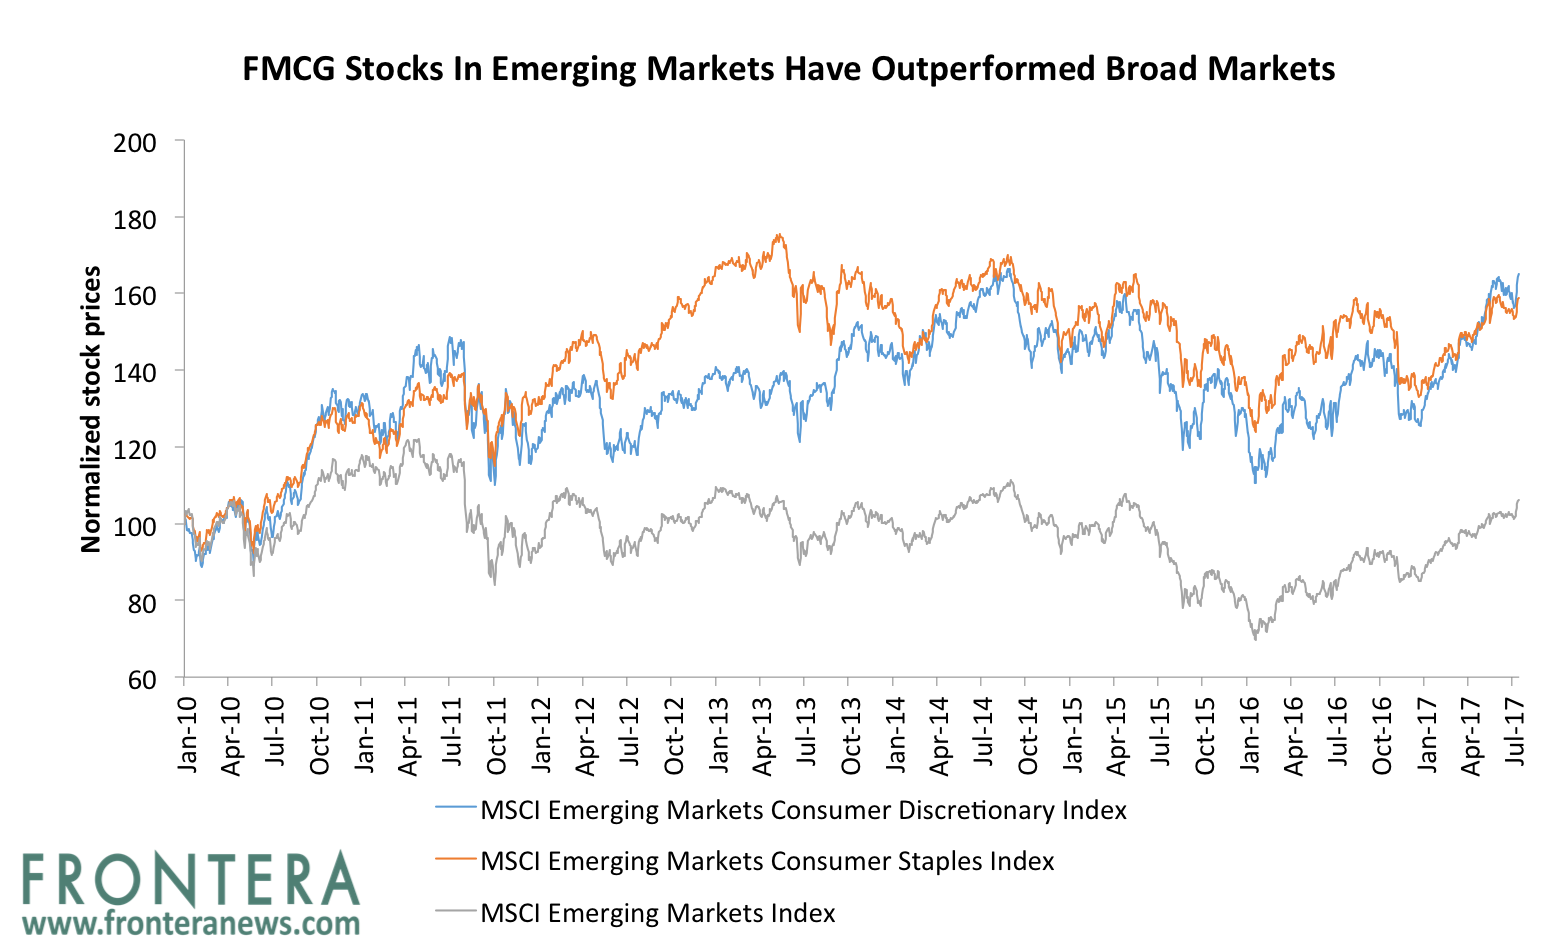 The 5 Largest Emerging Markets Based FMCG Stocks And Their Battle